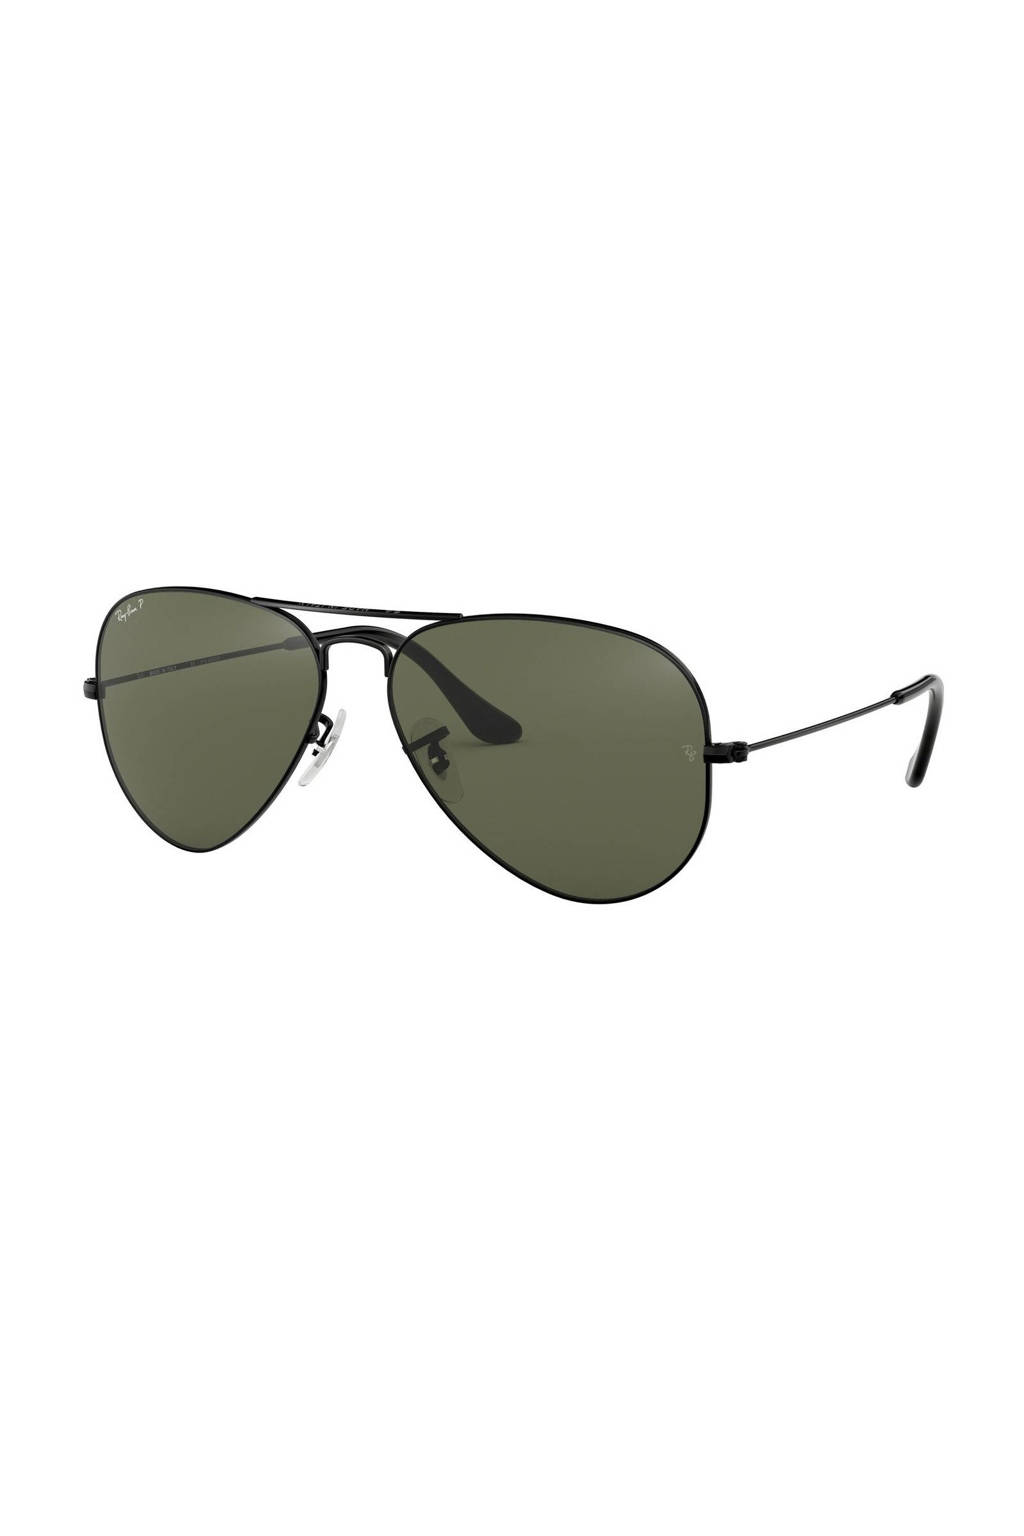 Ray-Ban zonnebril 0RB3025, Groen